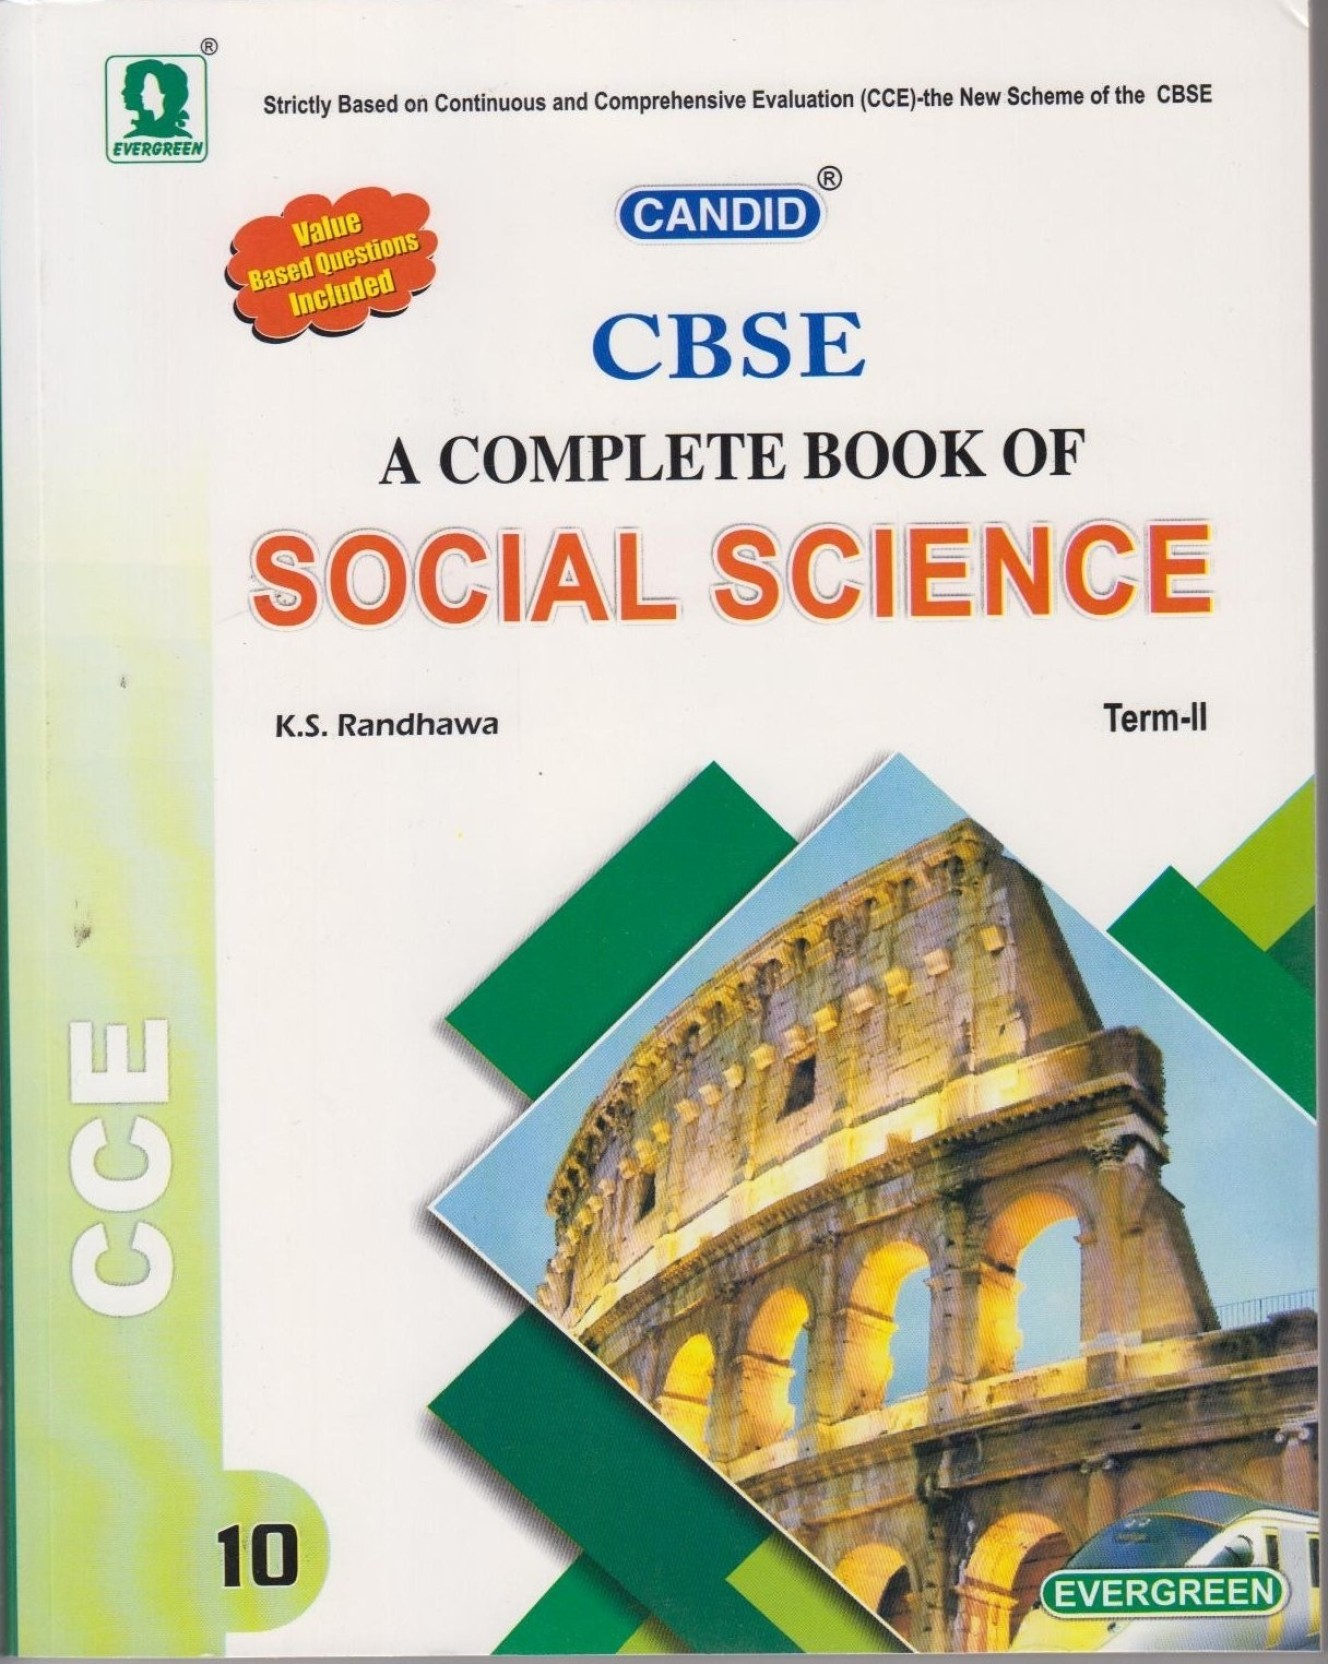 CANDID CBSE A Complete Book of Social Science for Class 10 (Term II) 01.  Share